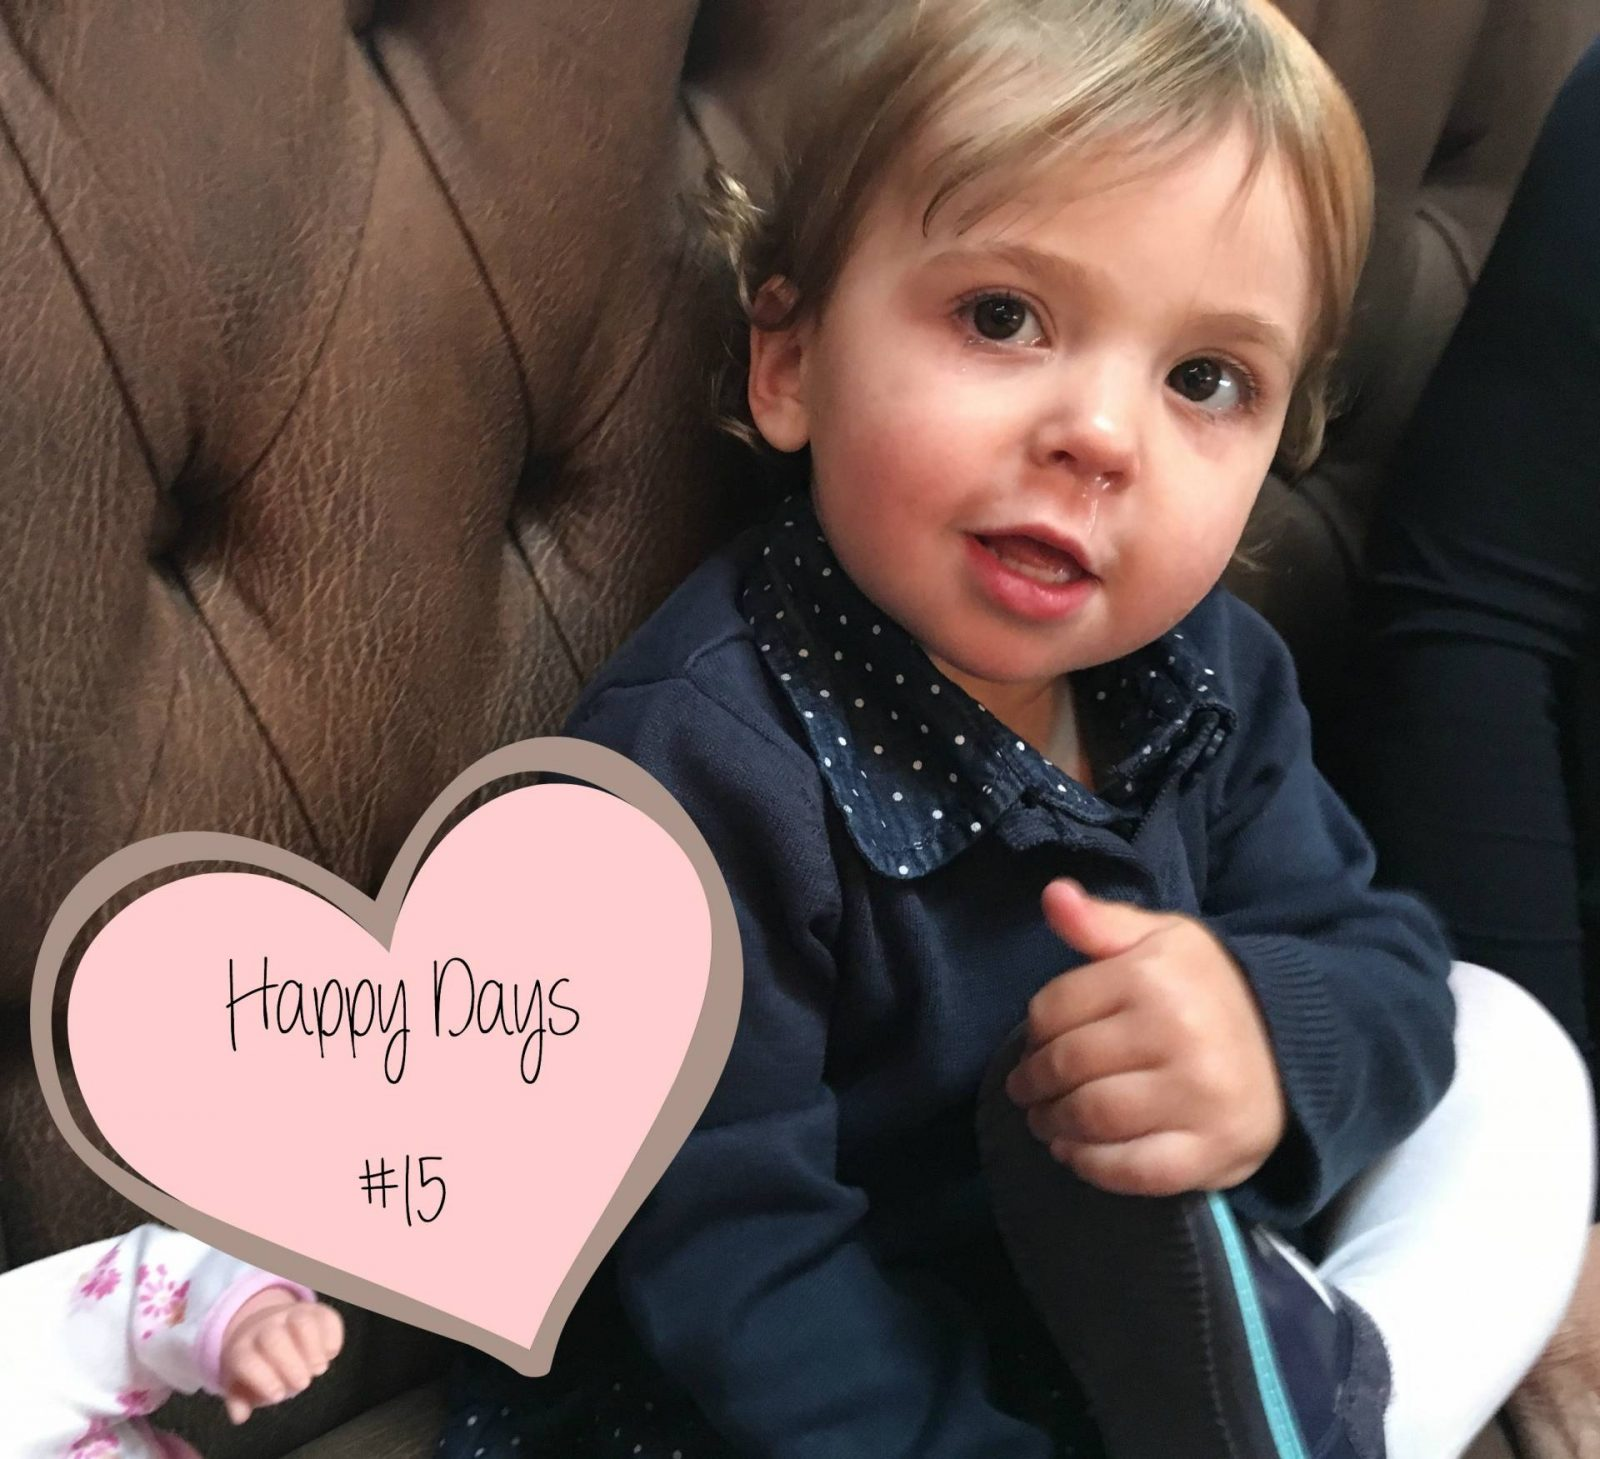 New School, Husband Home and Race for Life…Happy Days #15